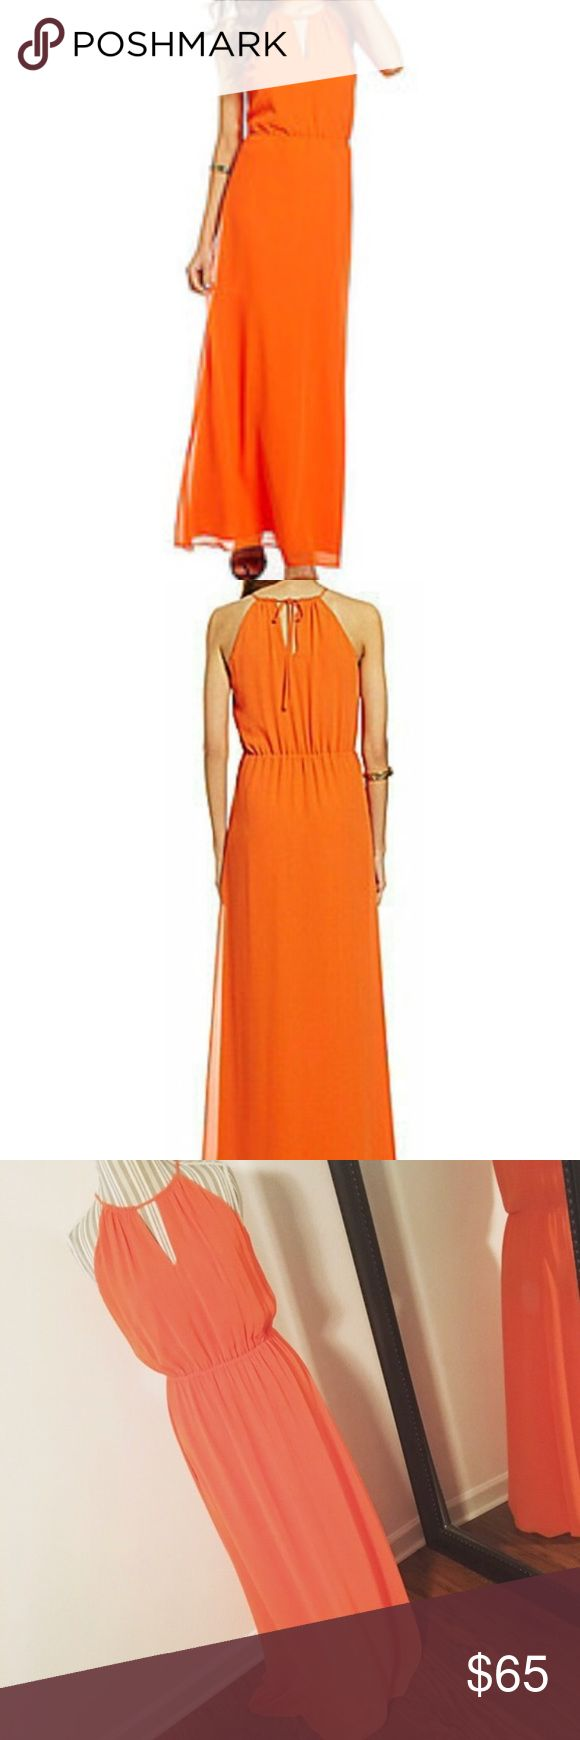 🔥BRAND 🆕 orange maxi dress Brand new orange maxi dress, can be dressed up or dressed down ! It was a present that's why the tag is ripped but it's brand new & never worn ! Offers are welcome !!!💰💰💰 Gianni Bini Dresses Maxi